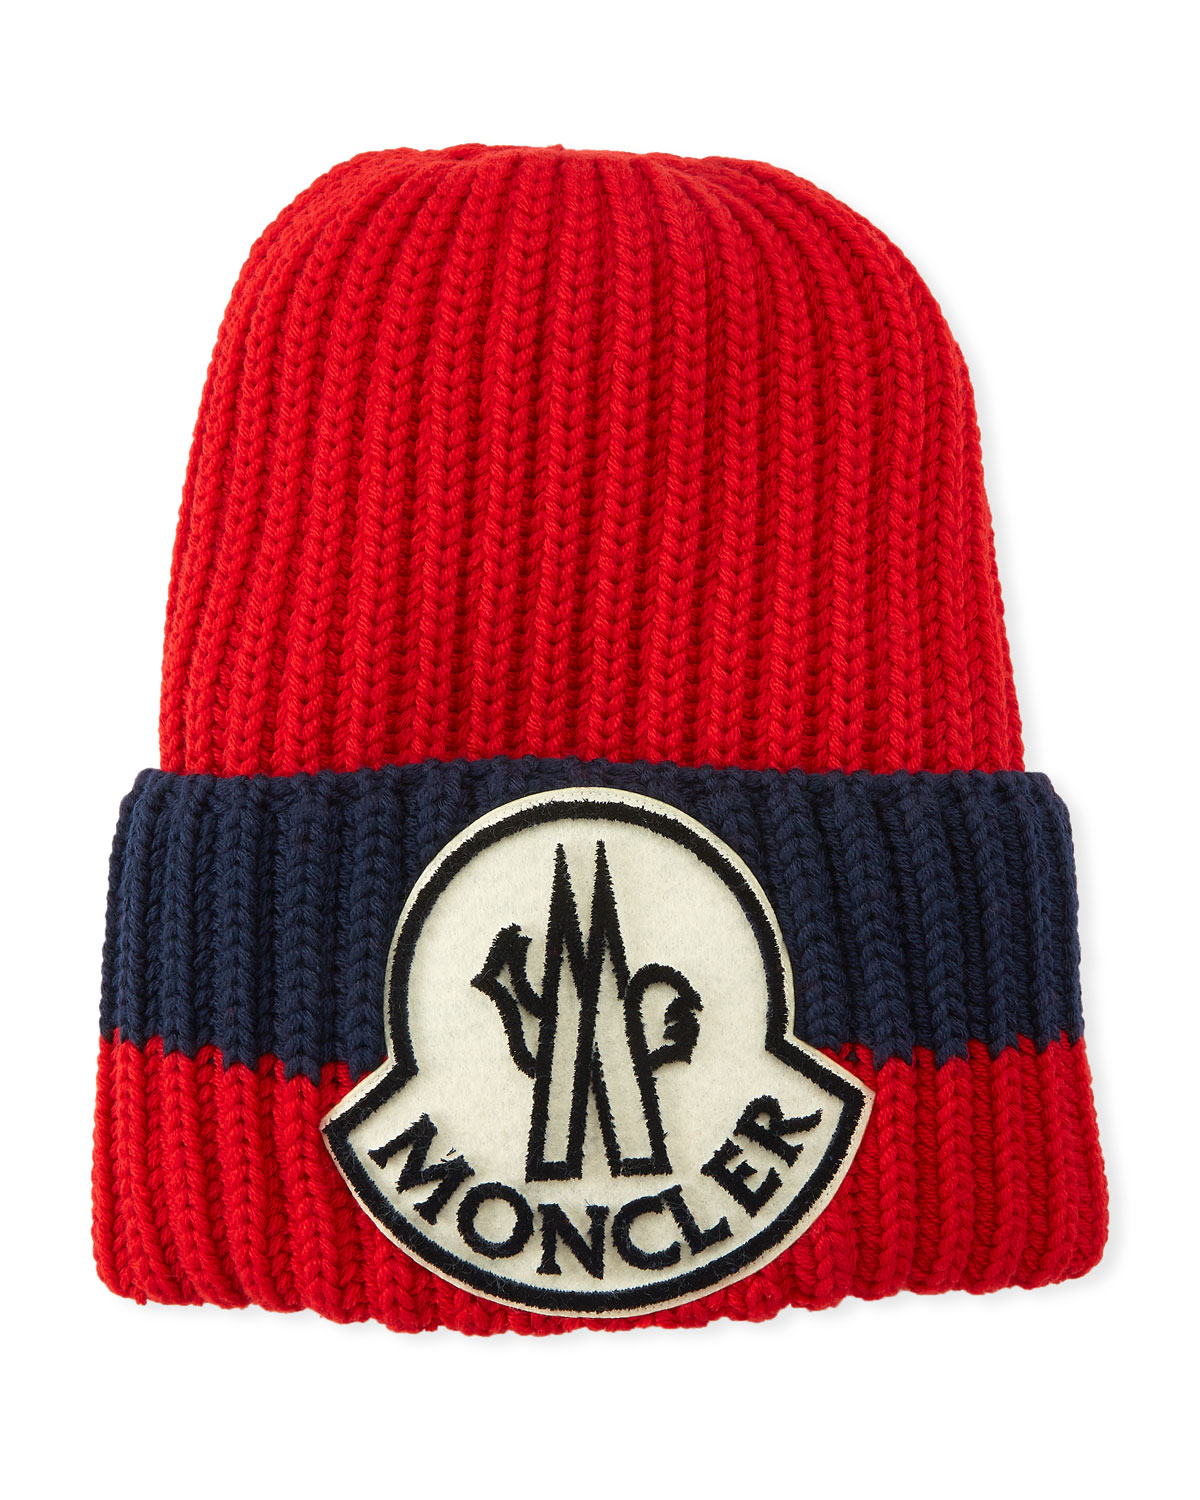 ecbccc561a8 Moncler Men s Ribbed Colorblock Beanie Hat